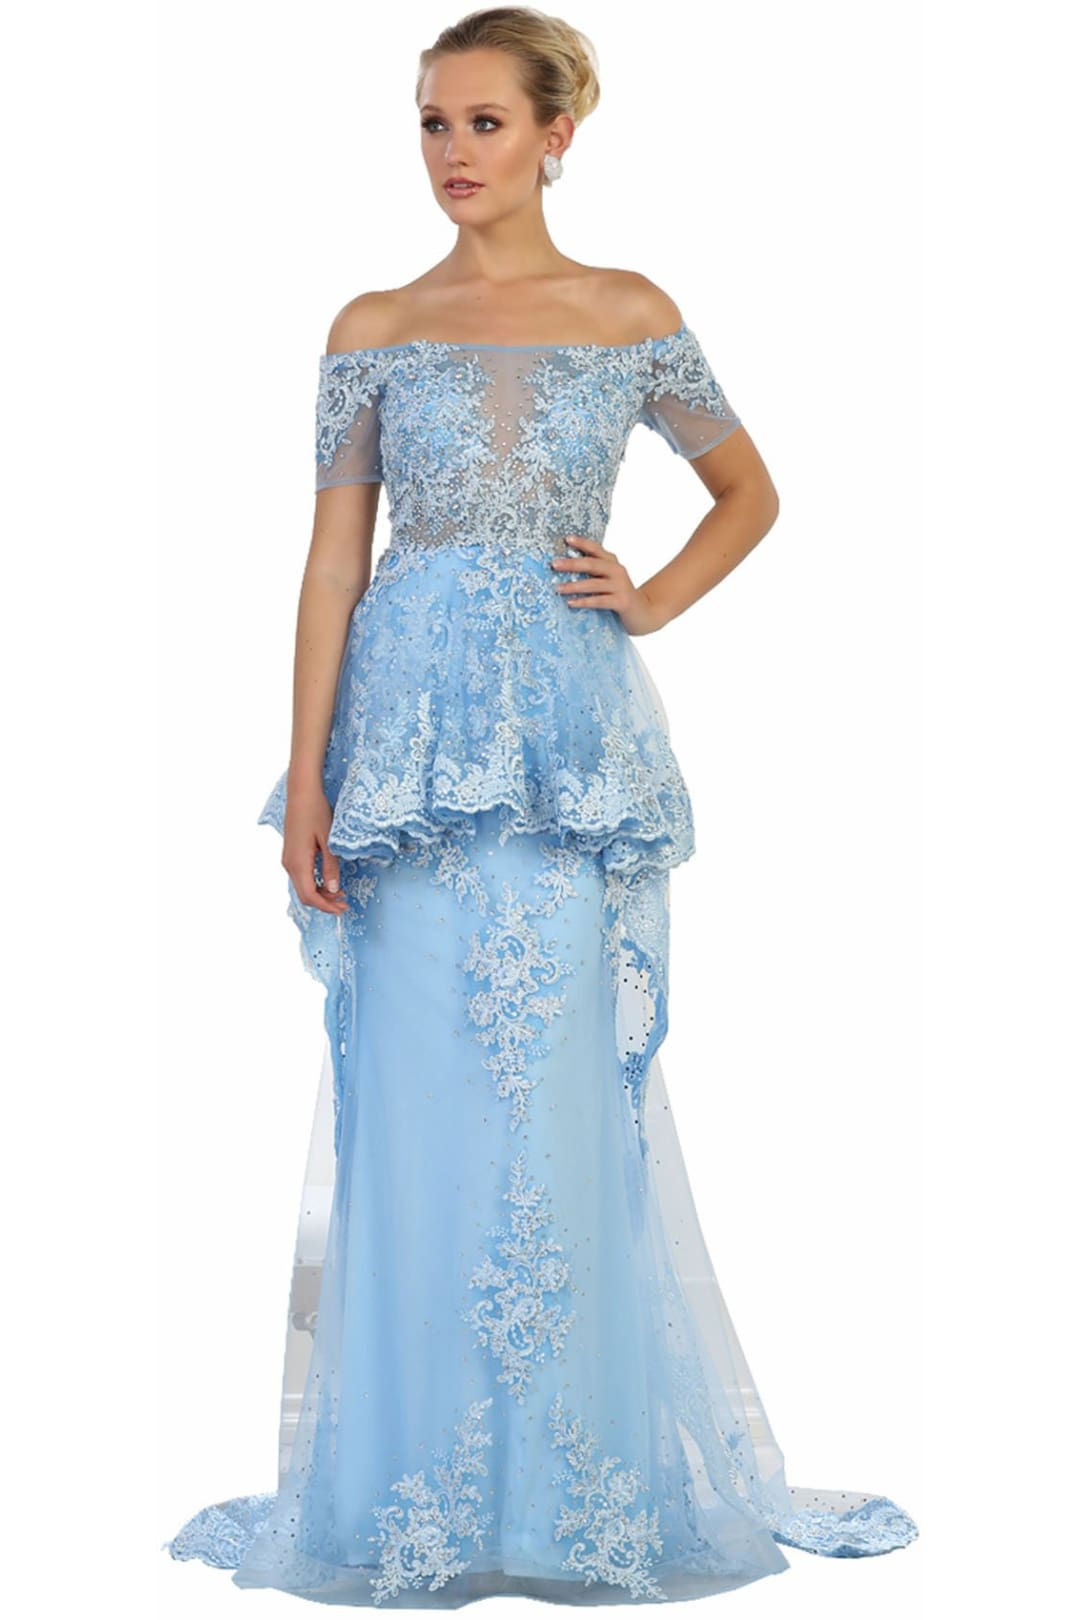 Peplum Evening Gown - Periwinkle / 4